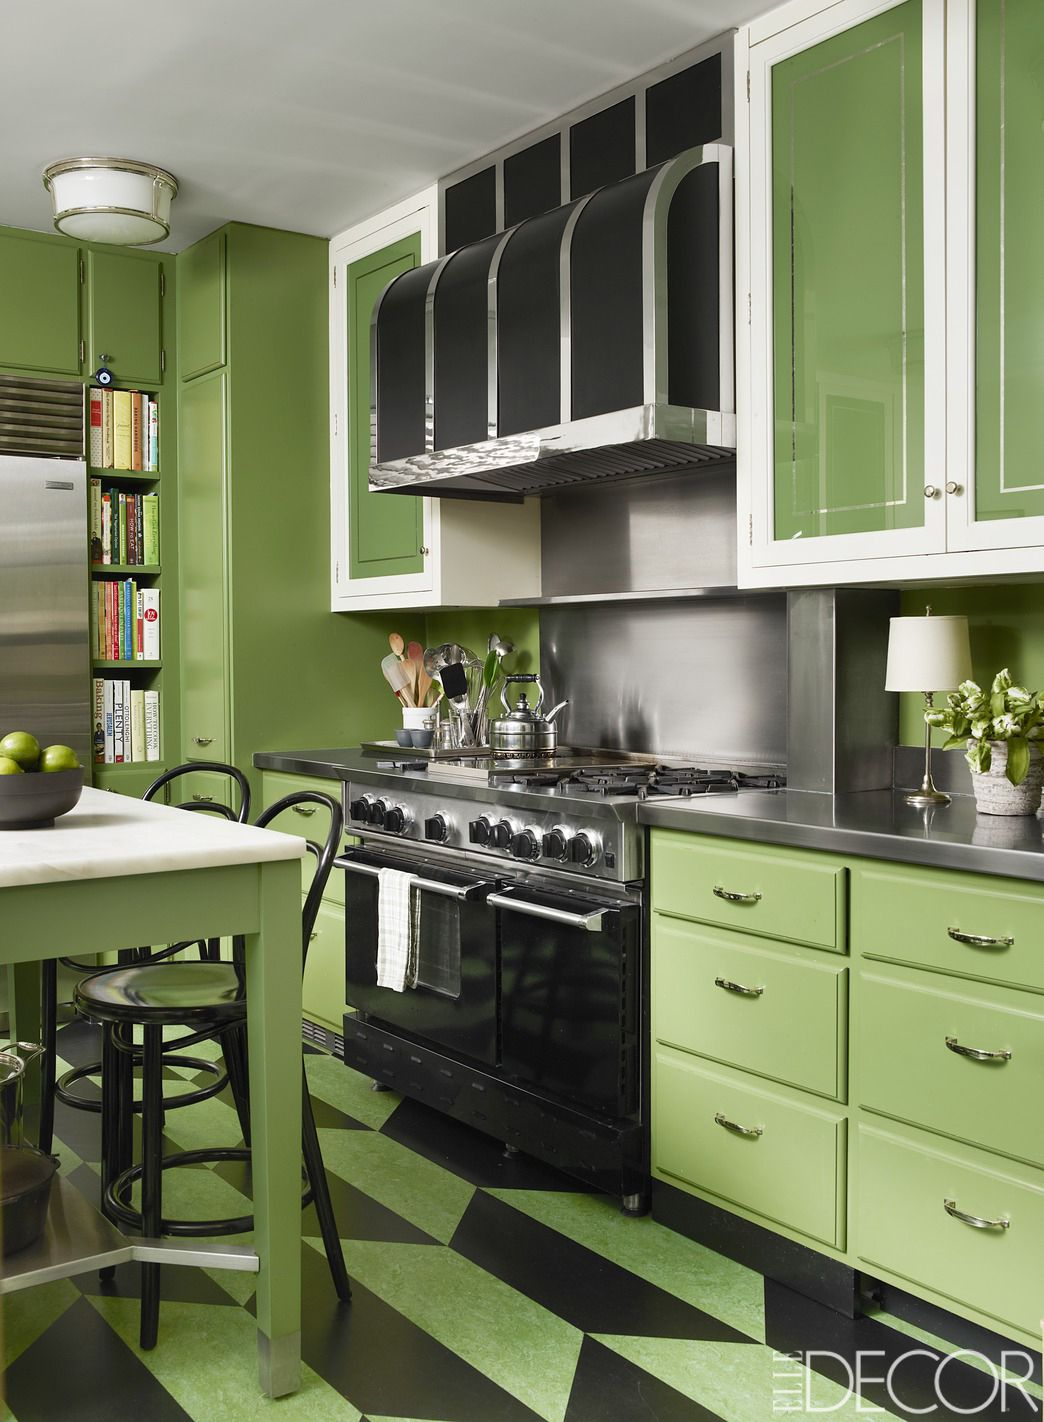 Green room paint ideas - Green Room Paint Ideas 19